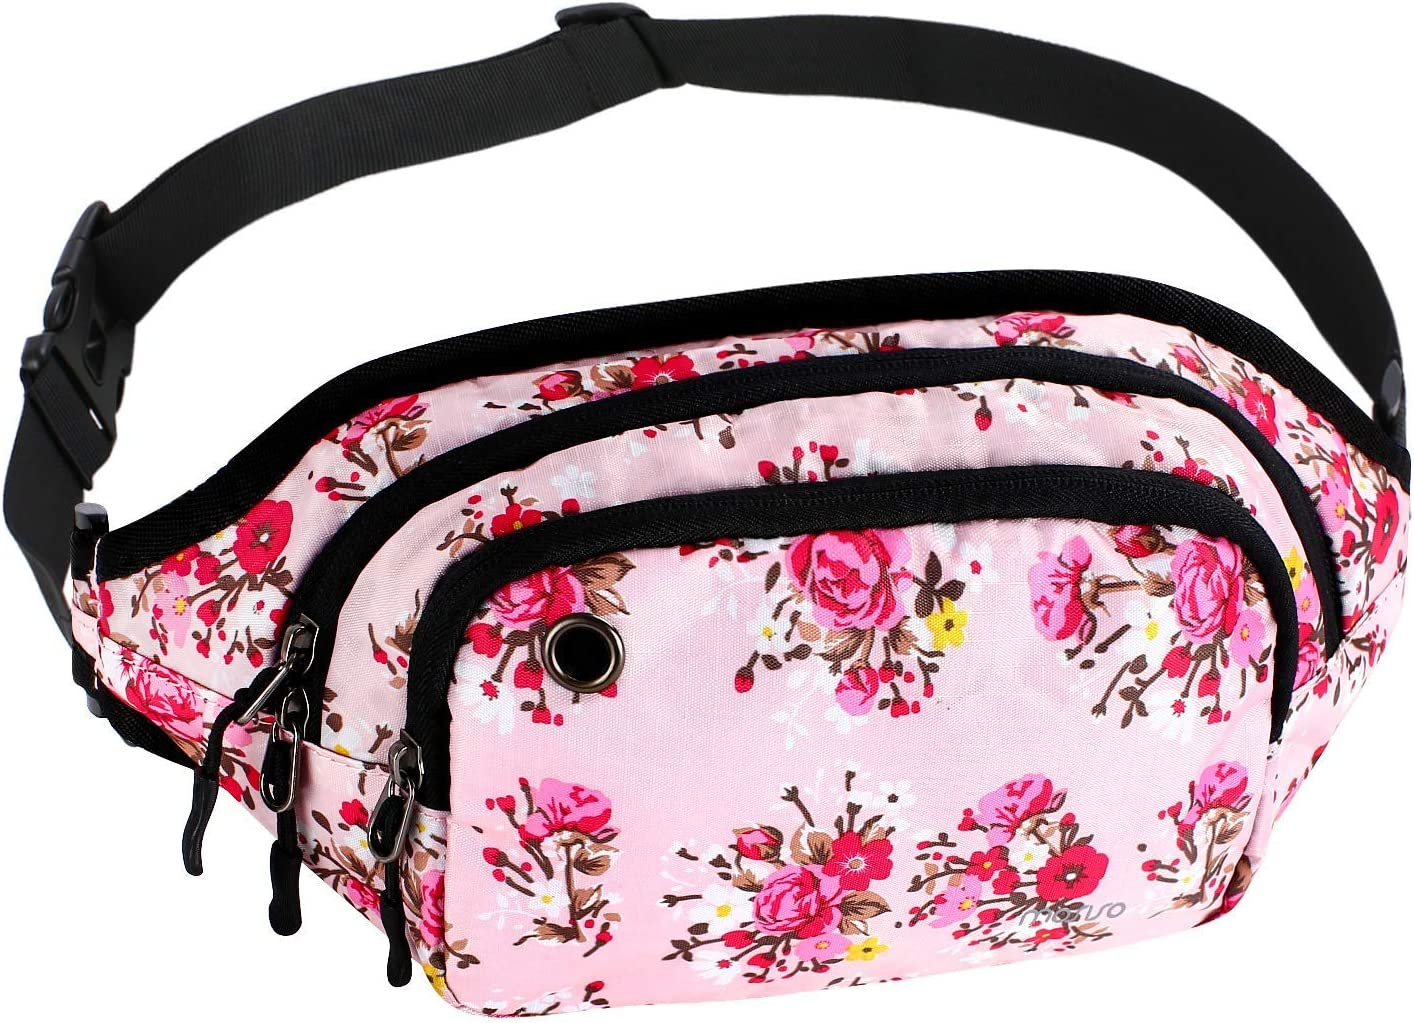 MOSISO Fanny Pack Waist Bag Pattern Bum Be Special Max 82% OFF price for a limited time Sports Hiking Running